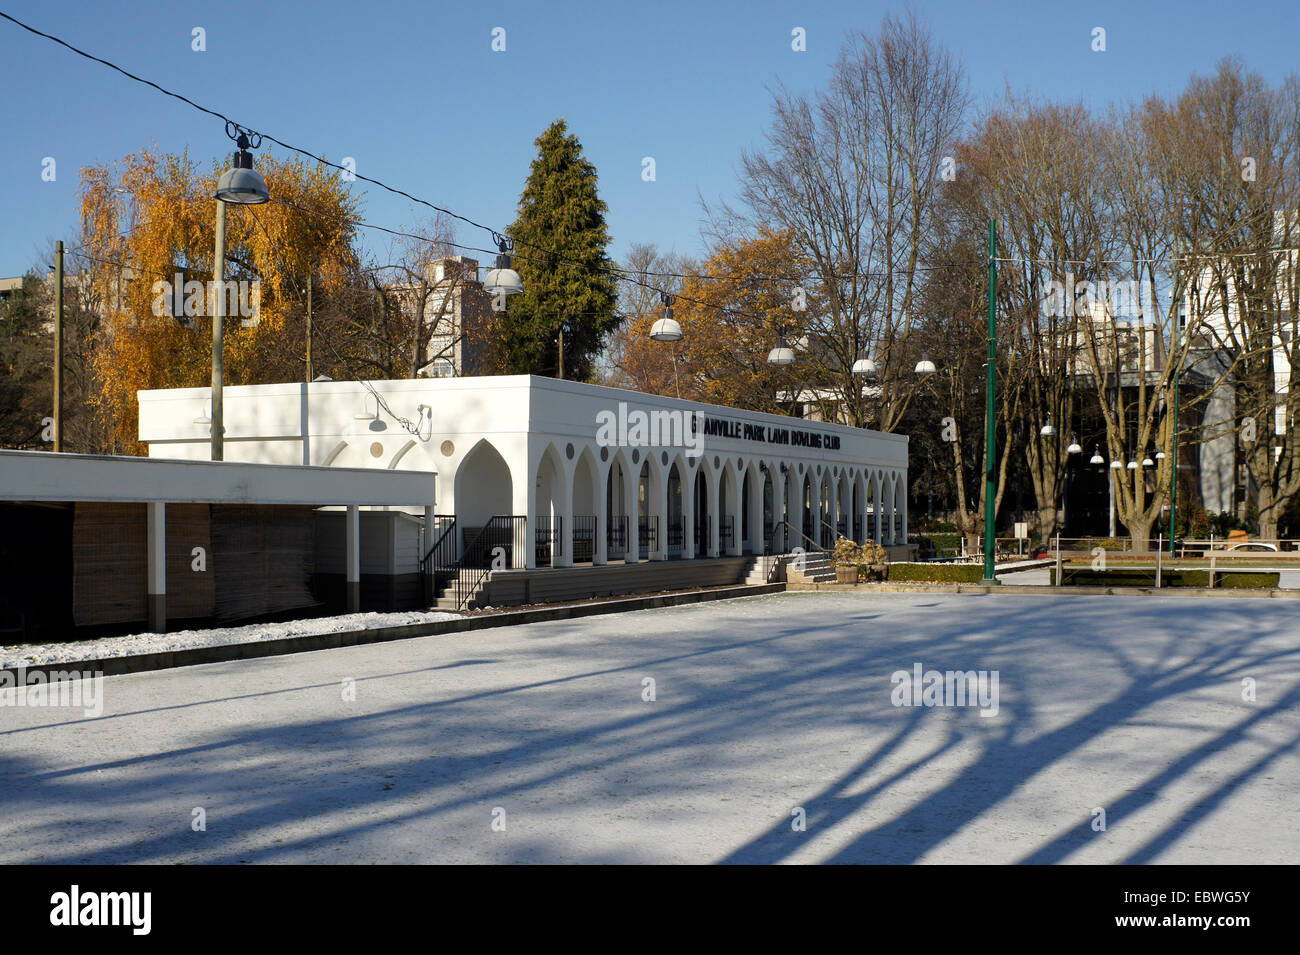 Granville Park Lawn Bowling Club building on a snowy winter day, Vancouver, British Columbia, Canada - Stock Image